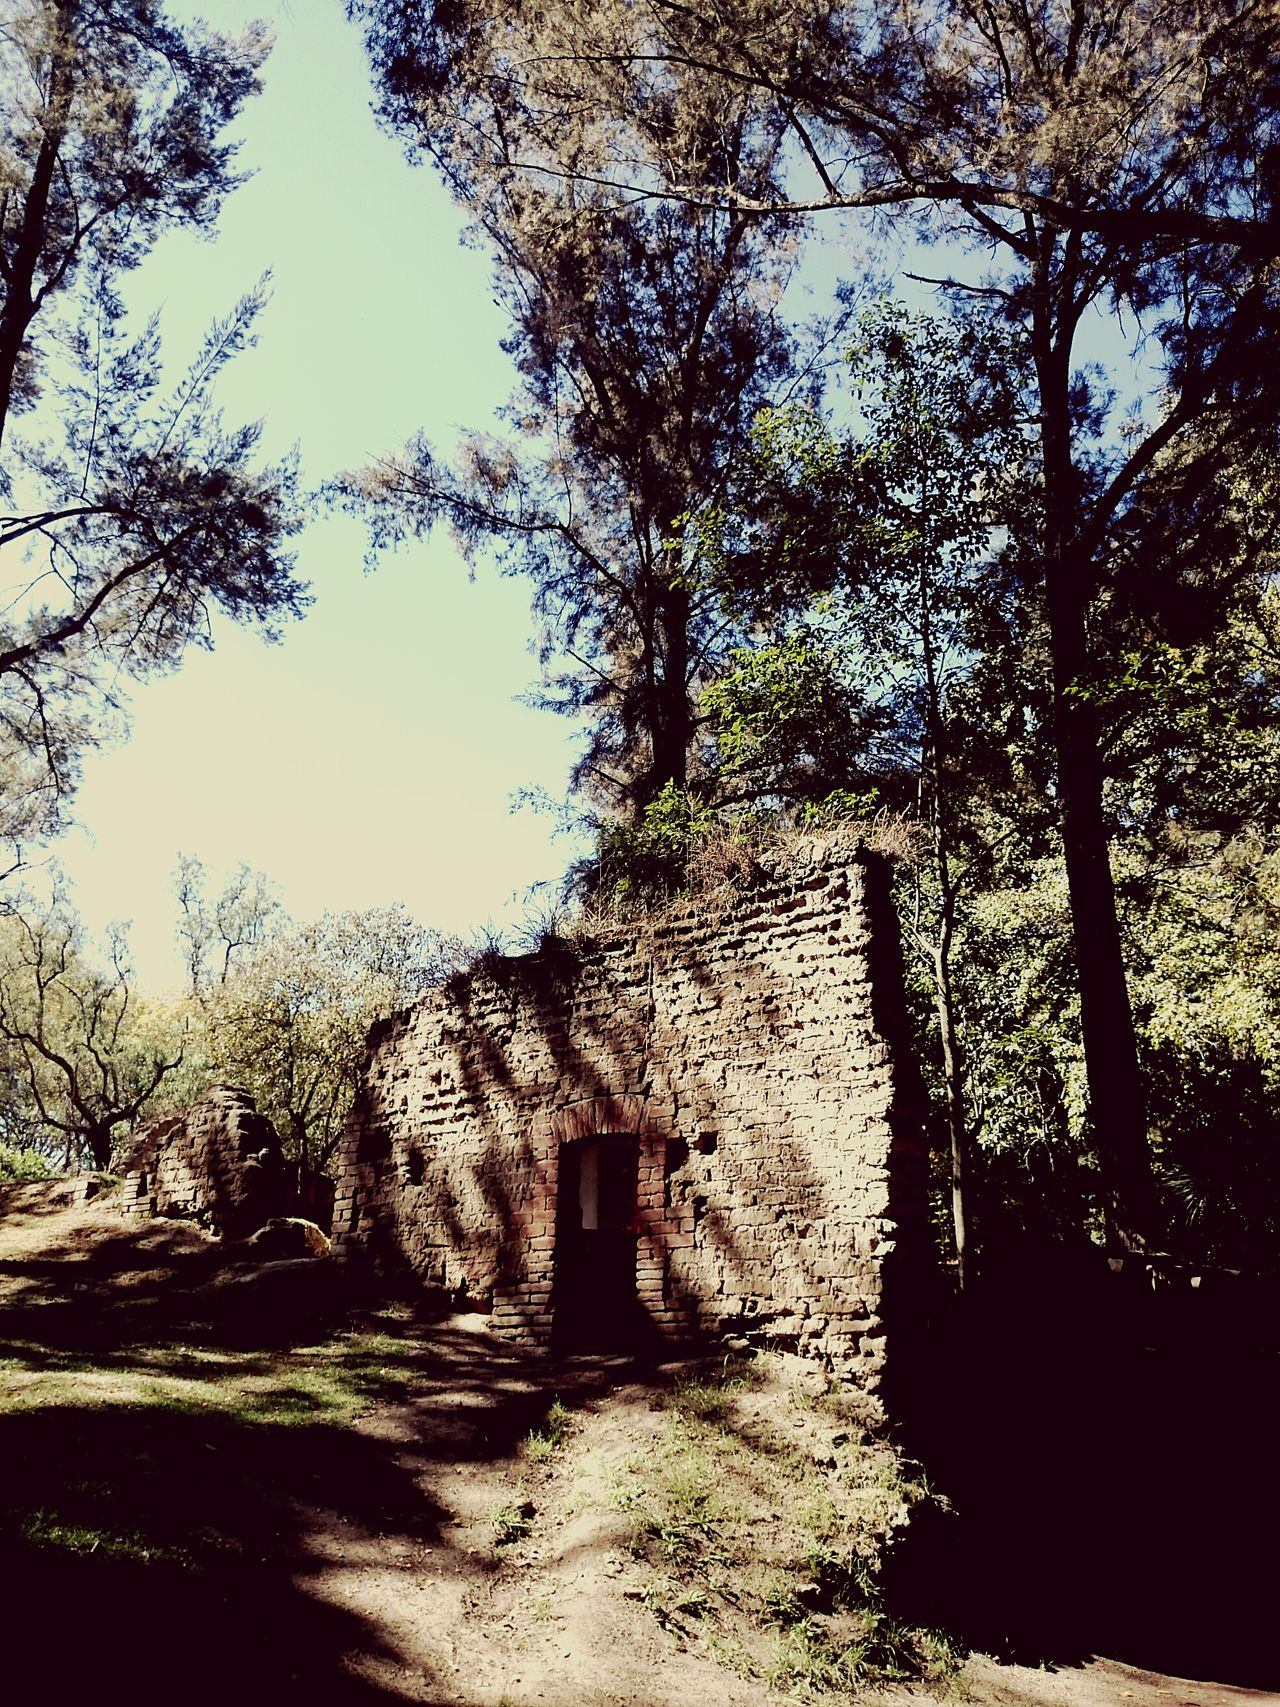 Forestwalk Forest Trees And Nature Trees Wall Old Buildings Puebla Ex Hacienda De Chautla Chautla Woods